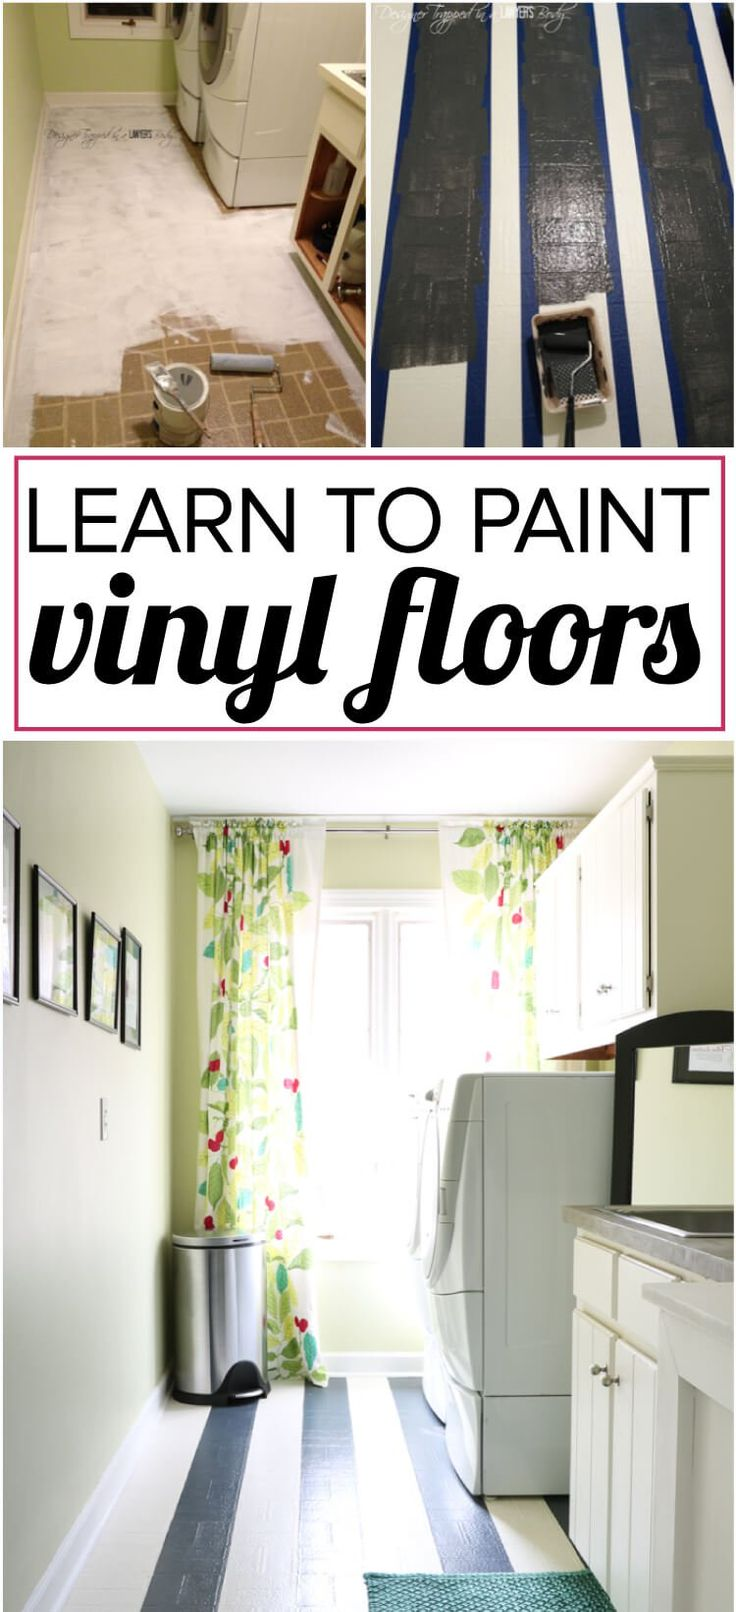 58759 best hometalk diy images on pinterest craft ideas for The best paint to use on vinyl floors